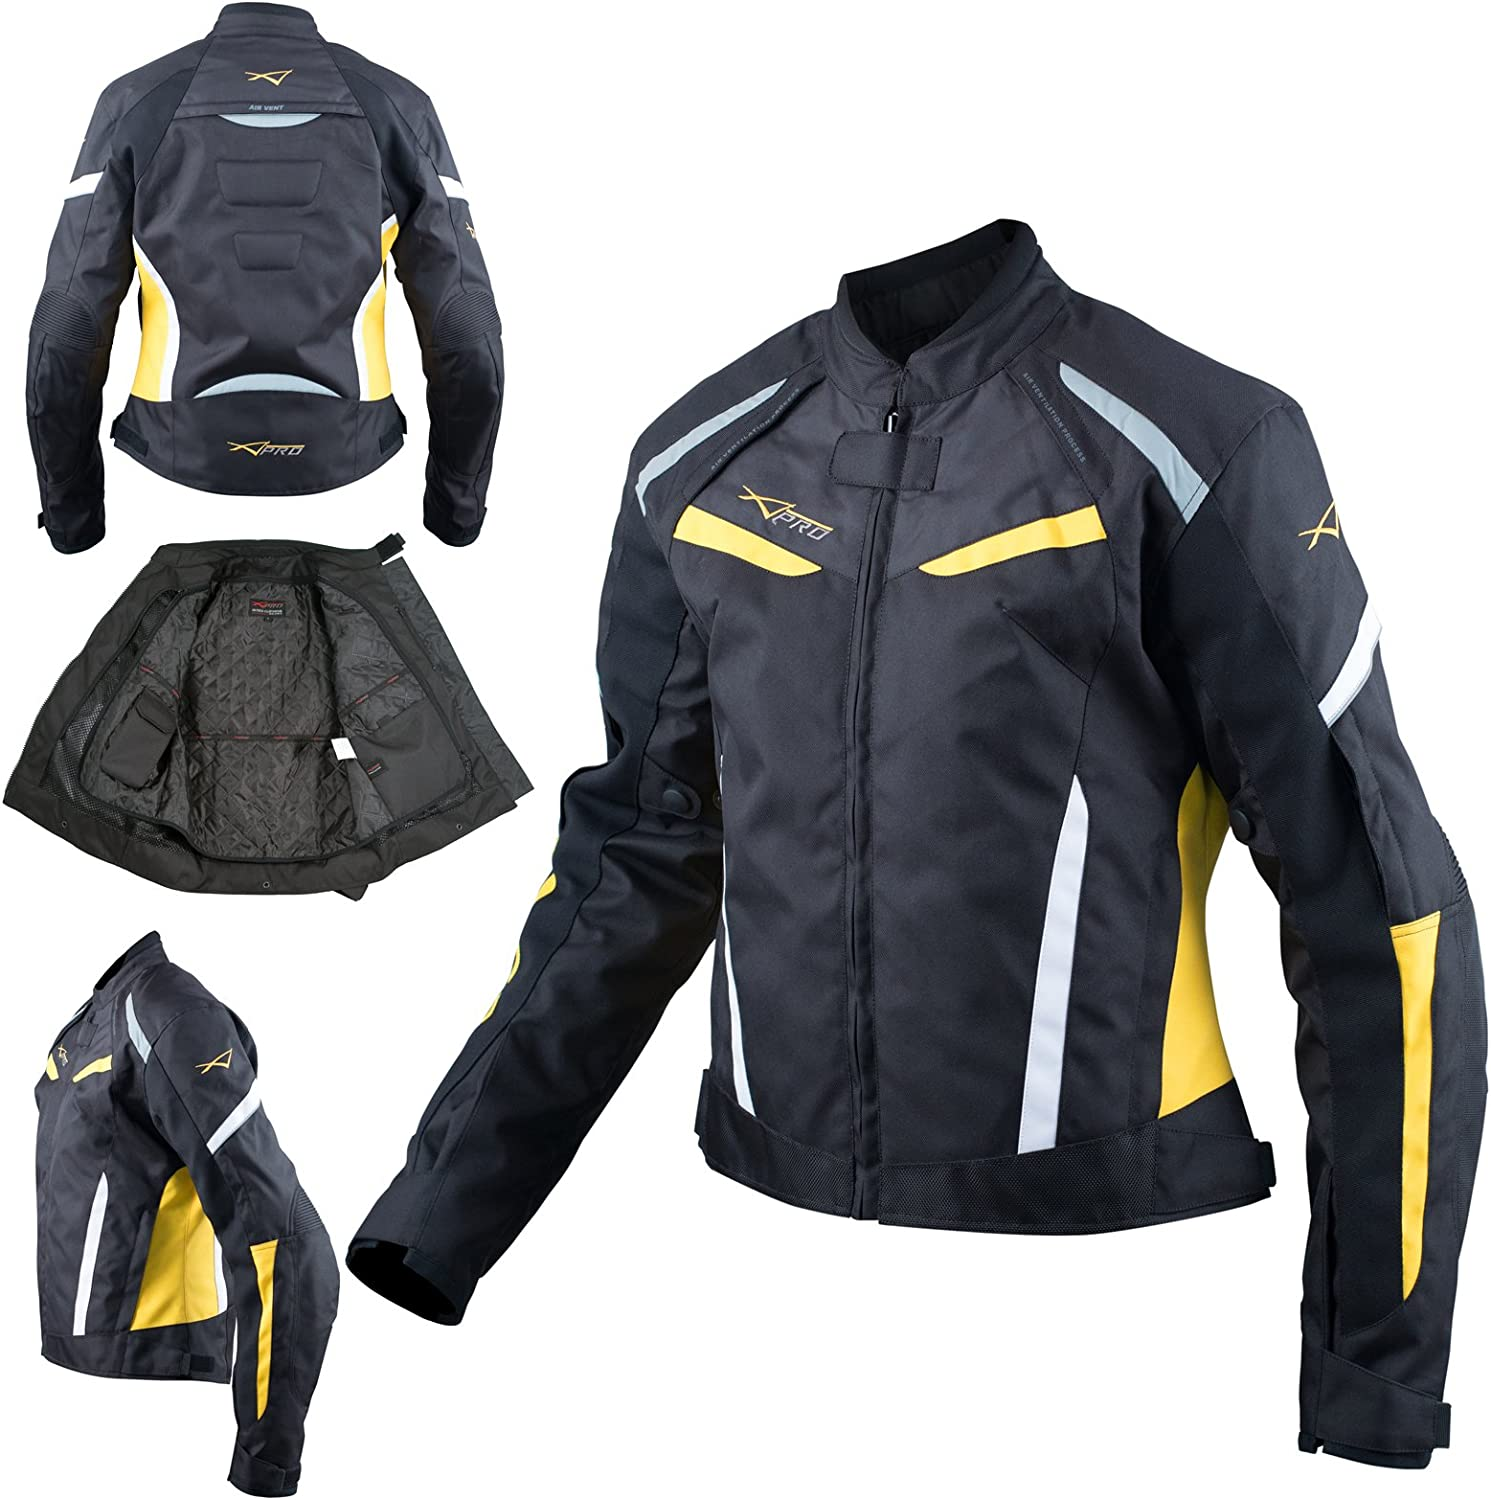 Motorcycle Ladies Strong Textile Jacket Touri Armor Brand new Today's only Motorbike CE